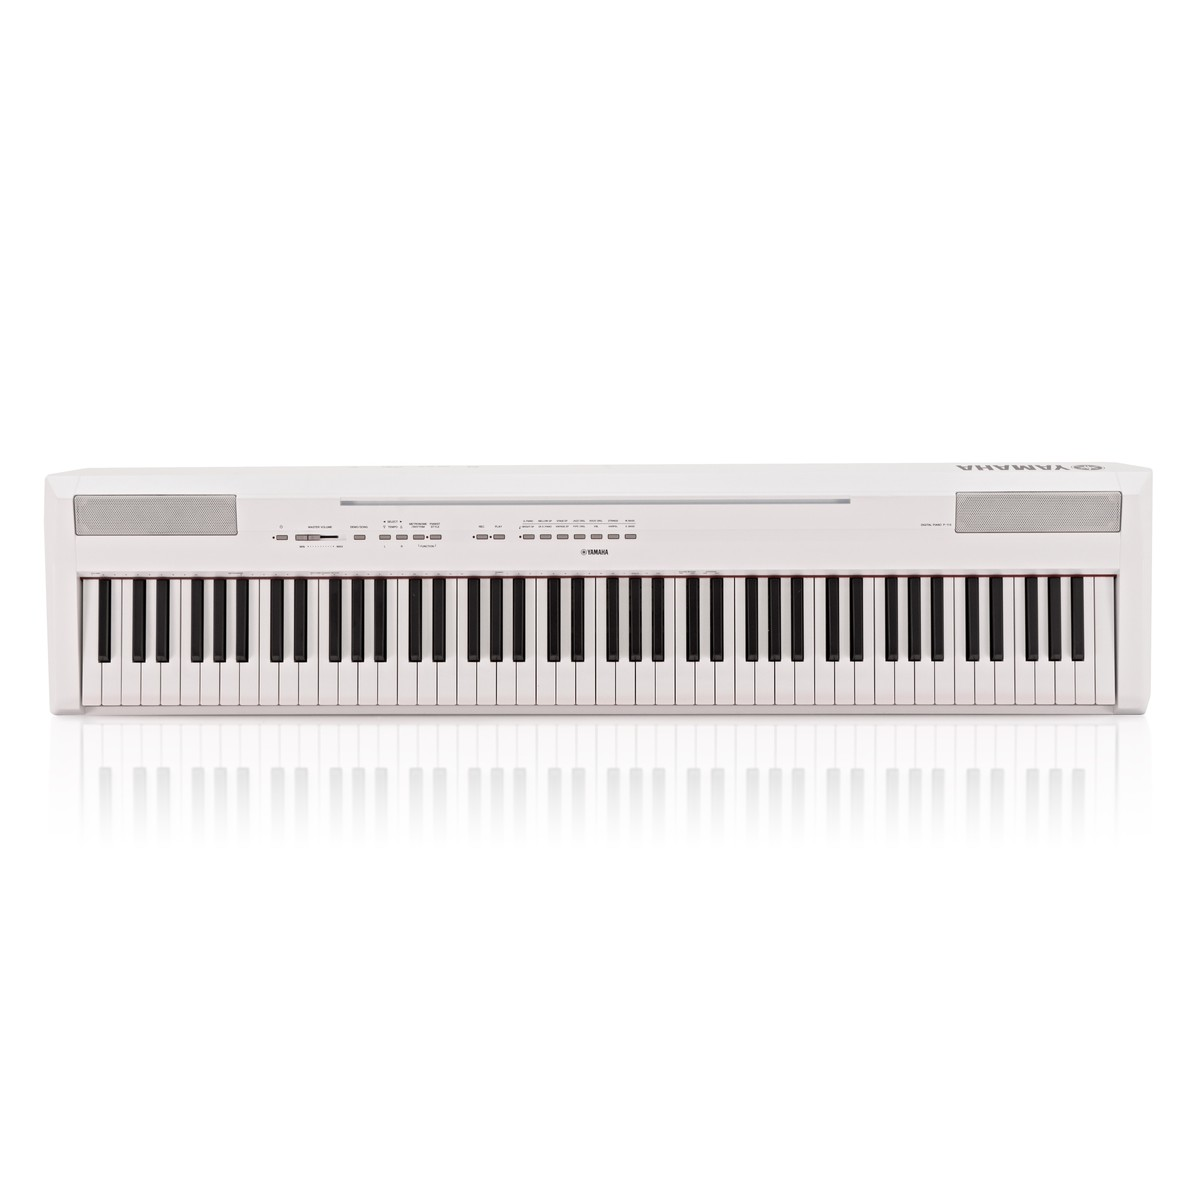 Yamaha p115 digital piano white at for White yamaha piano